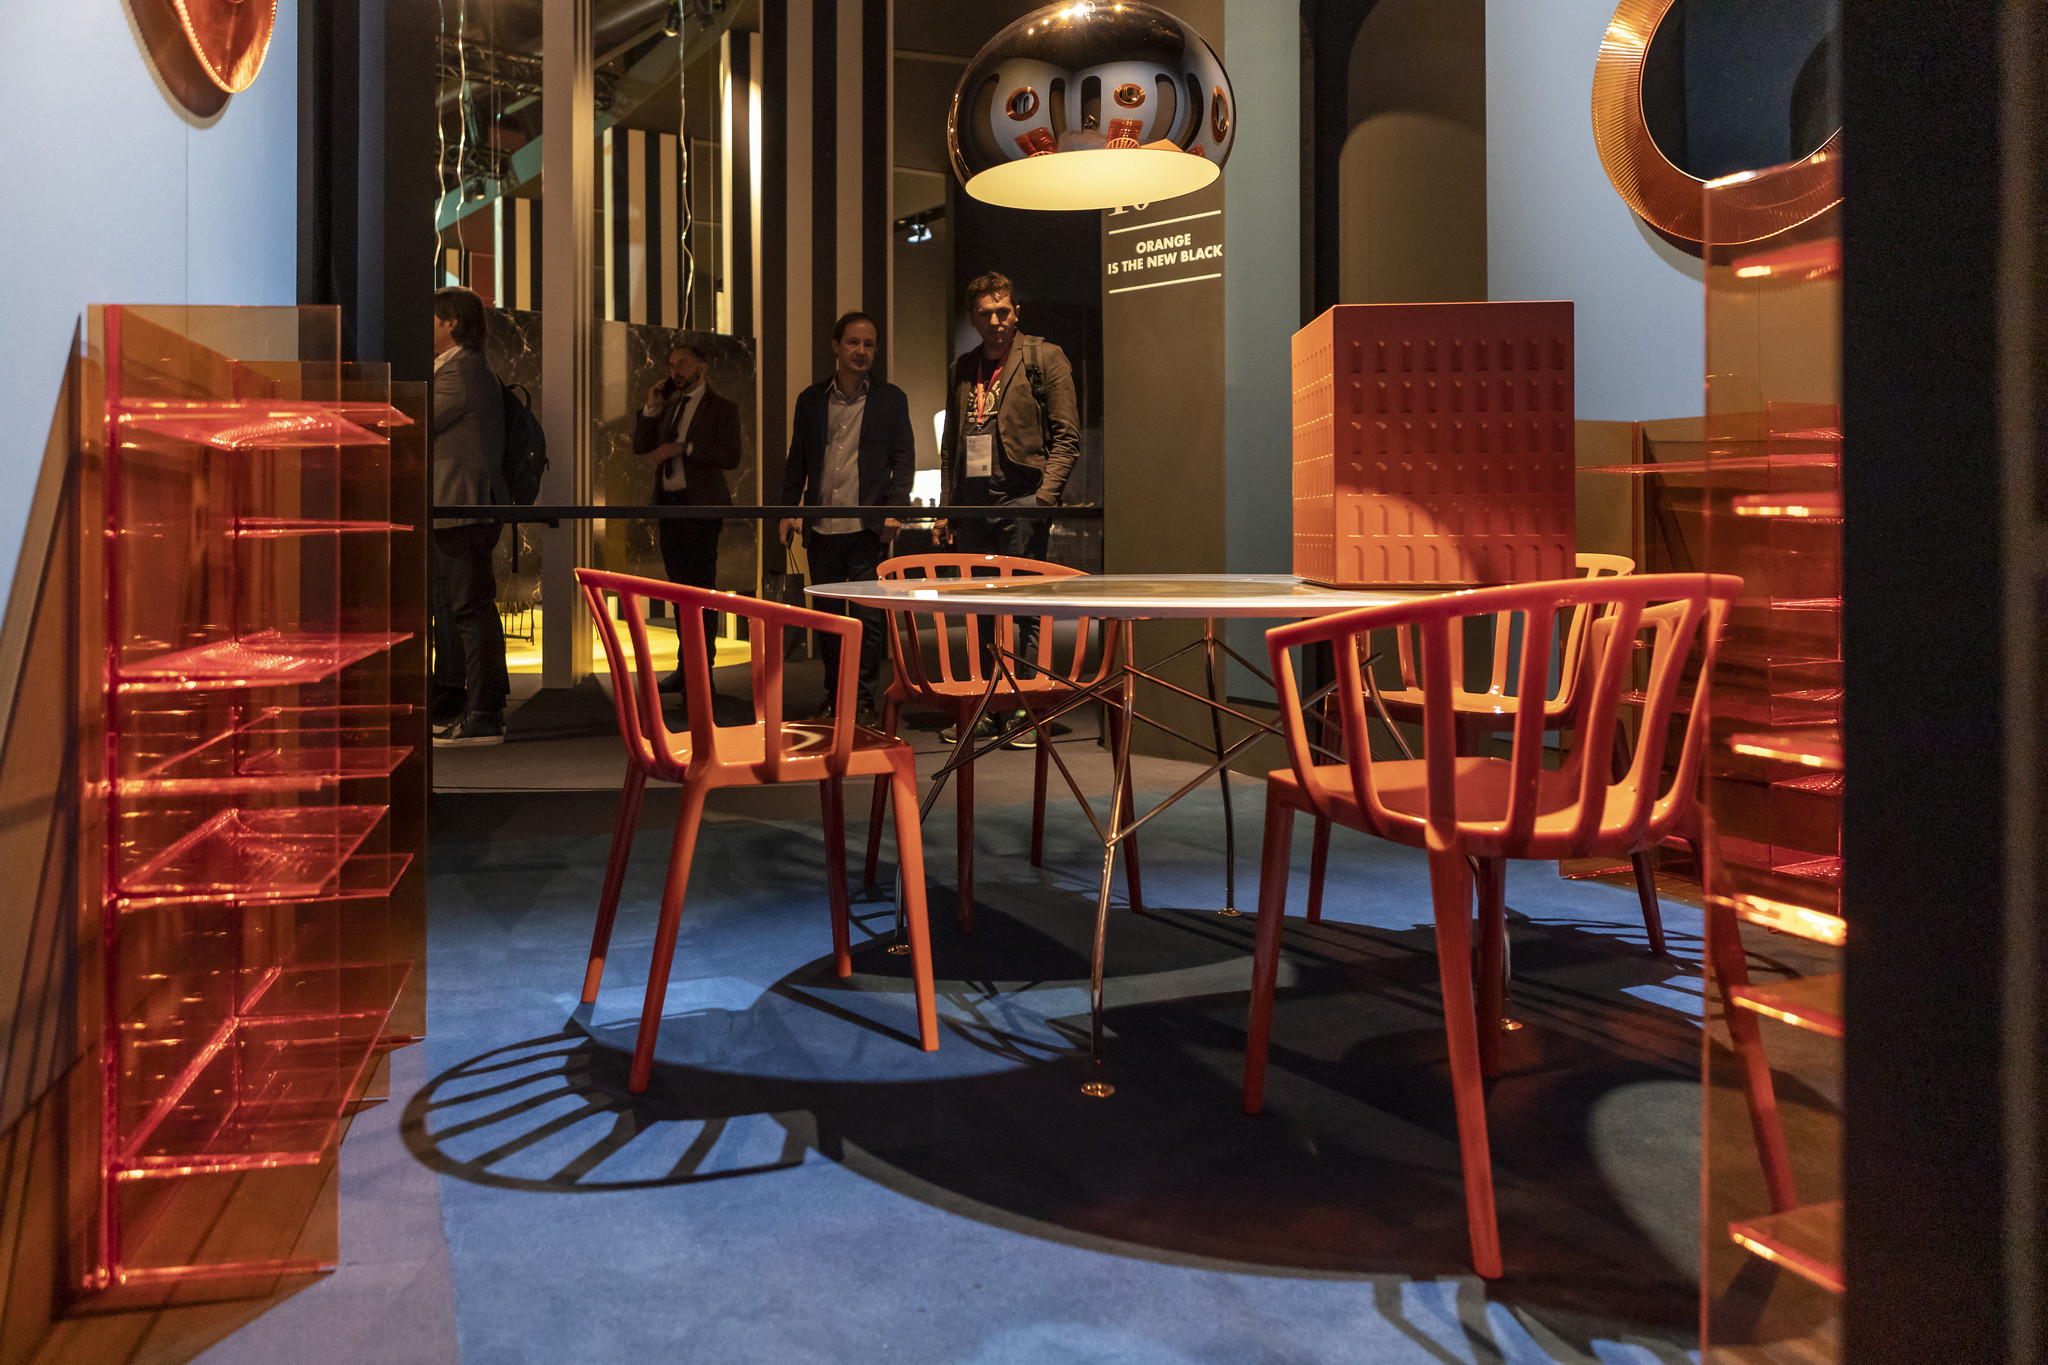 Trends and havoc at salone del mobile 2019 architect for Salone design milano